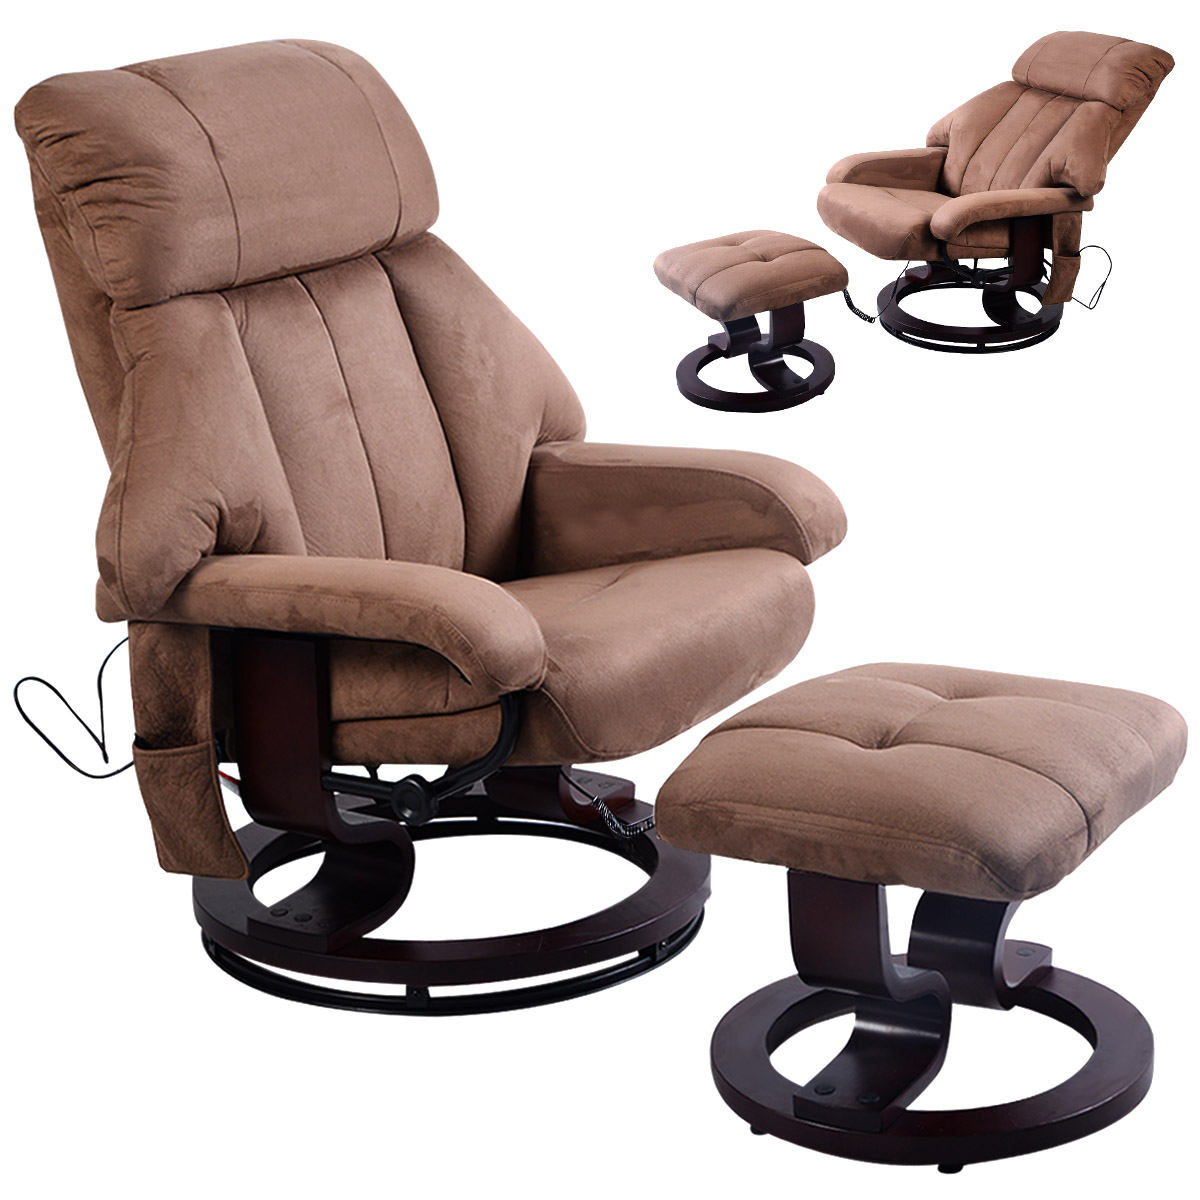 Costway Brown Leisure Recliner Chair Ottoman With 8 Motor Massage Heated  Swivel   Walmart.com